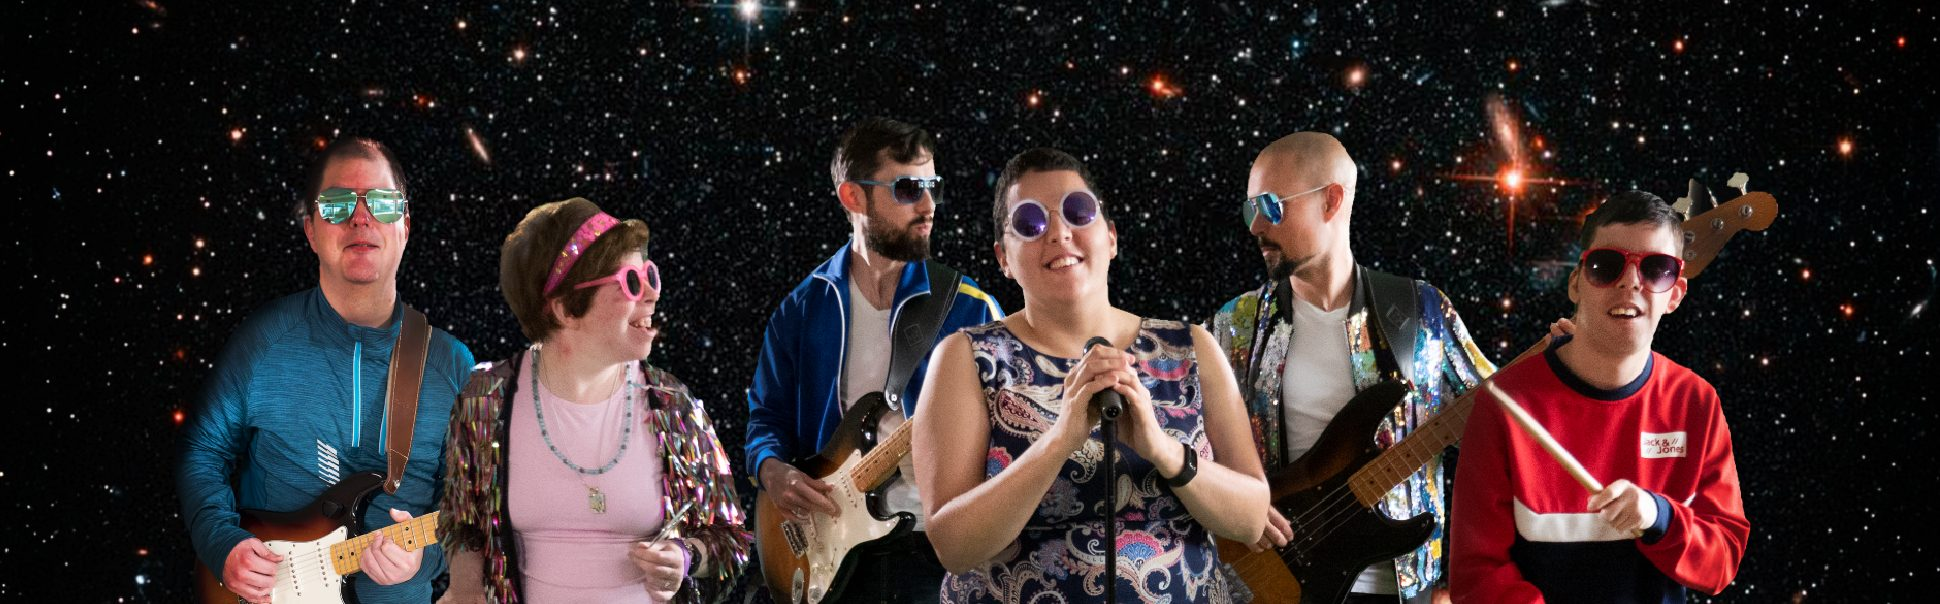 Electric Dreams band members in Space